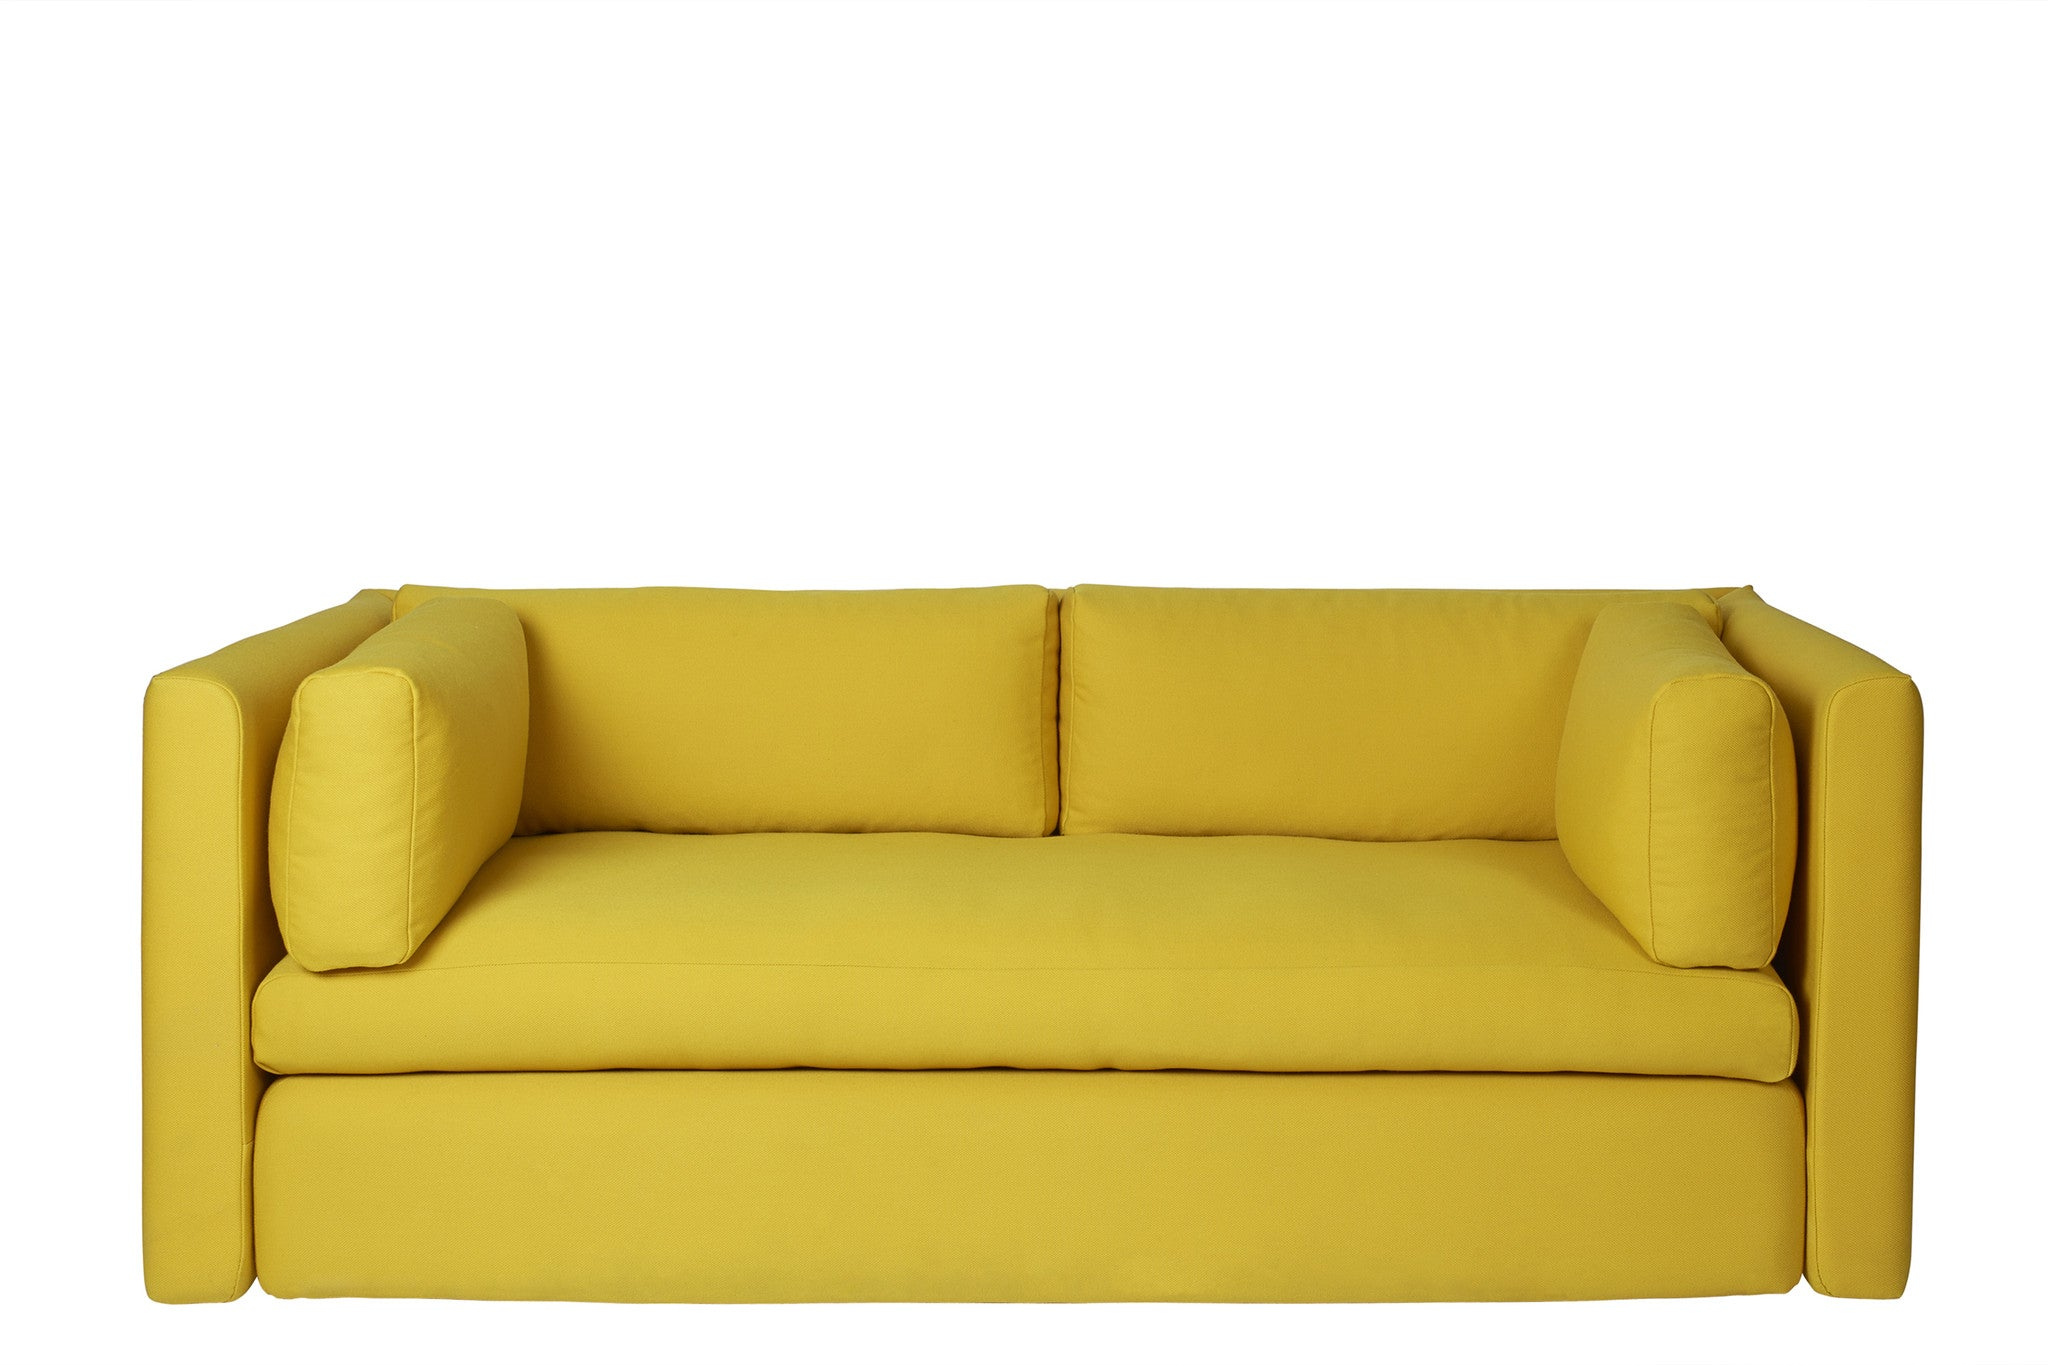 Sofa Hackney - Wrong for HAY